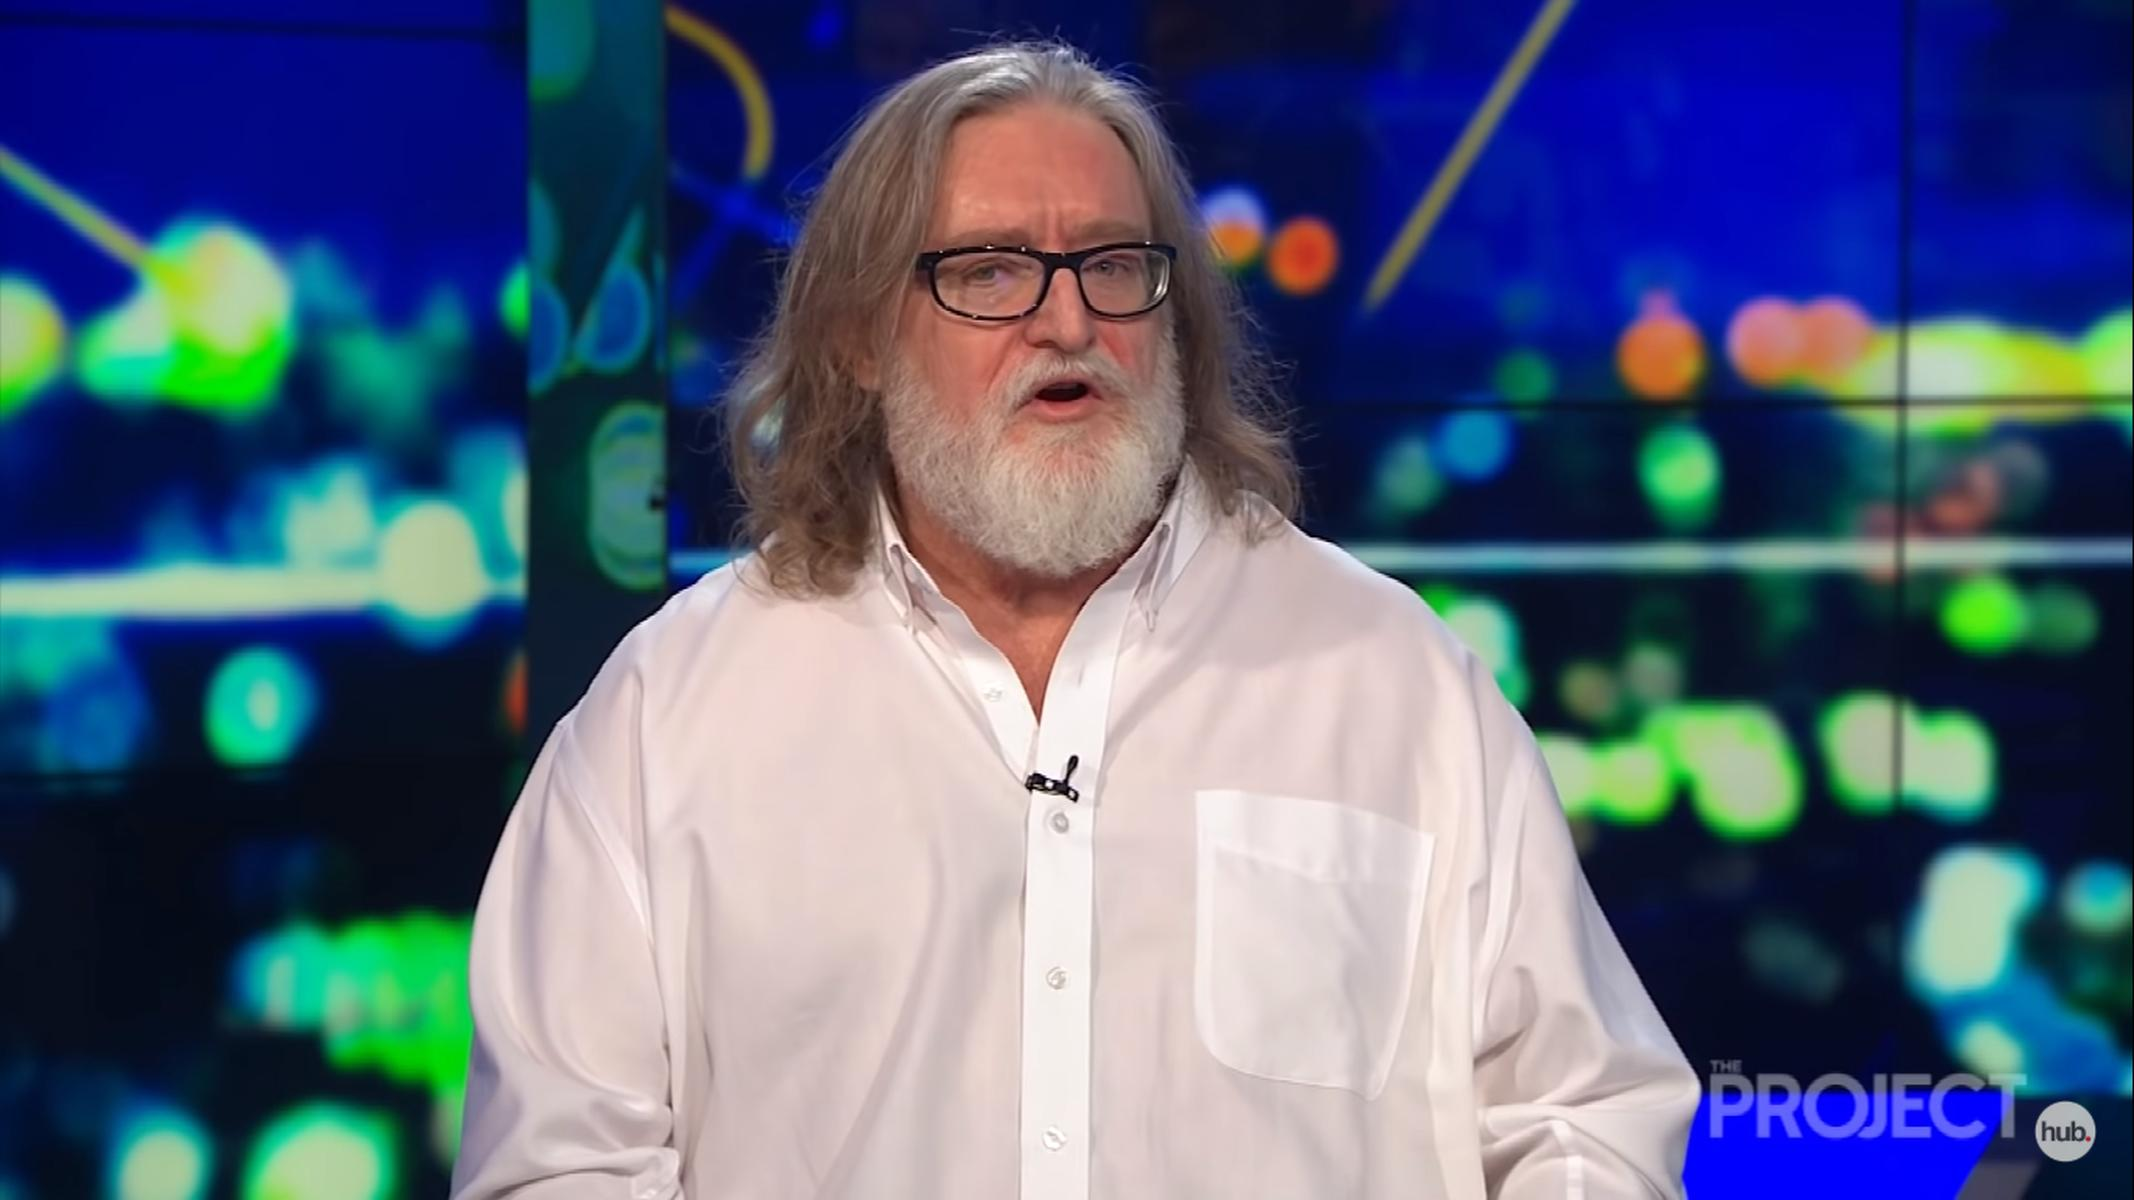 Gabe Newell The Project